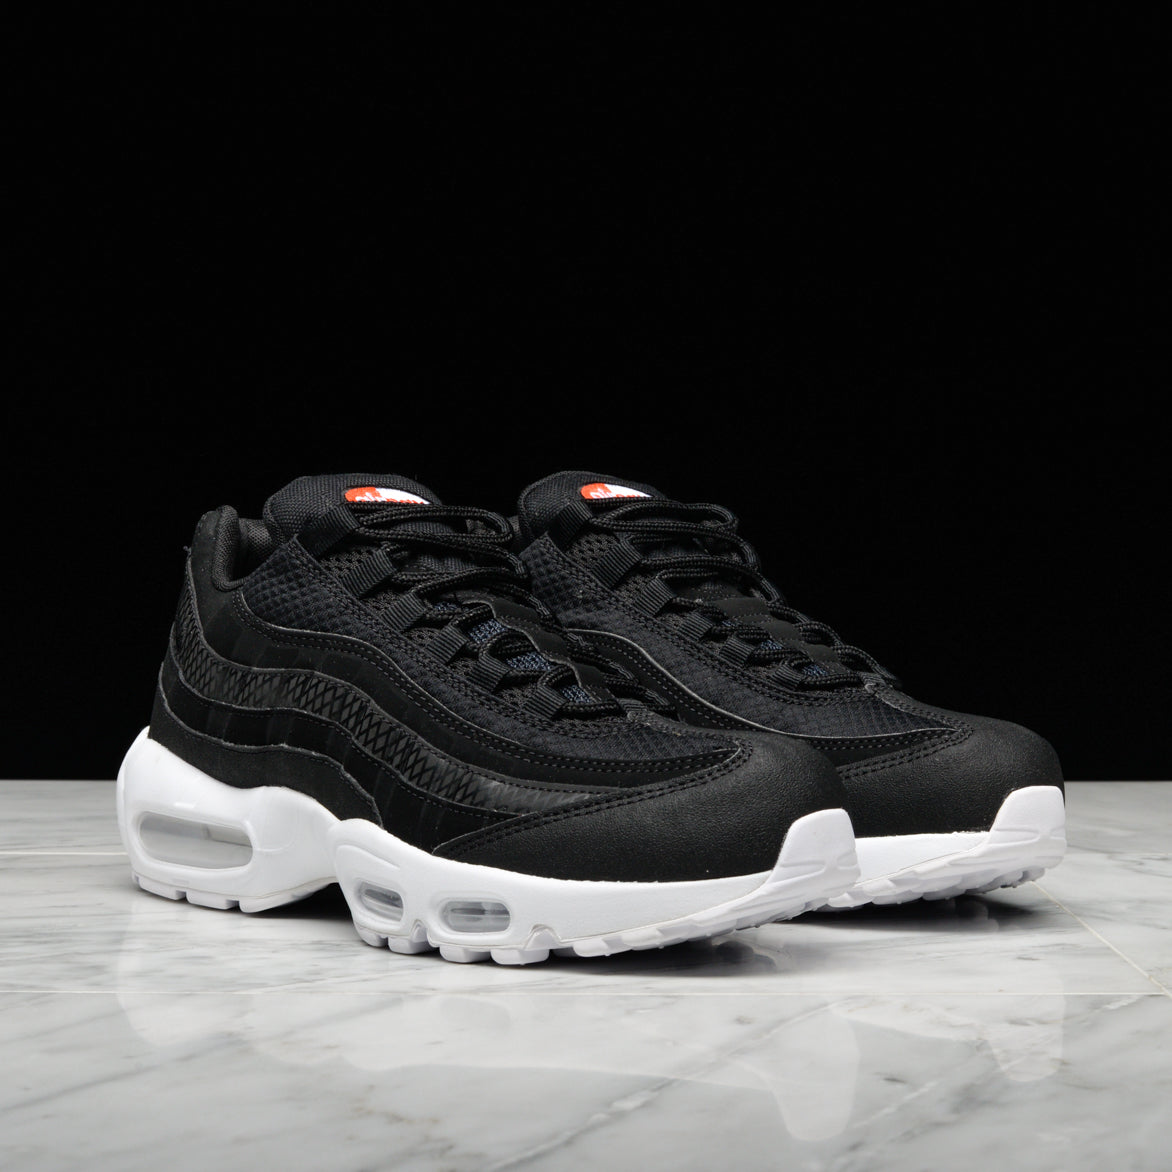 4d574dd60a60 ... AIR MAX 95 PREMIUM SE - BLACK   WHITE   TEAM ORANGE ...